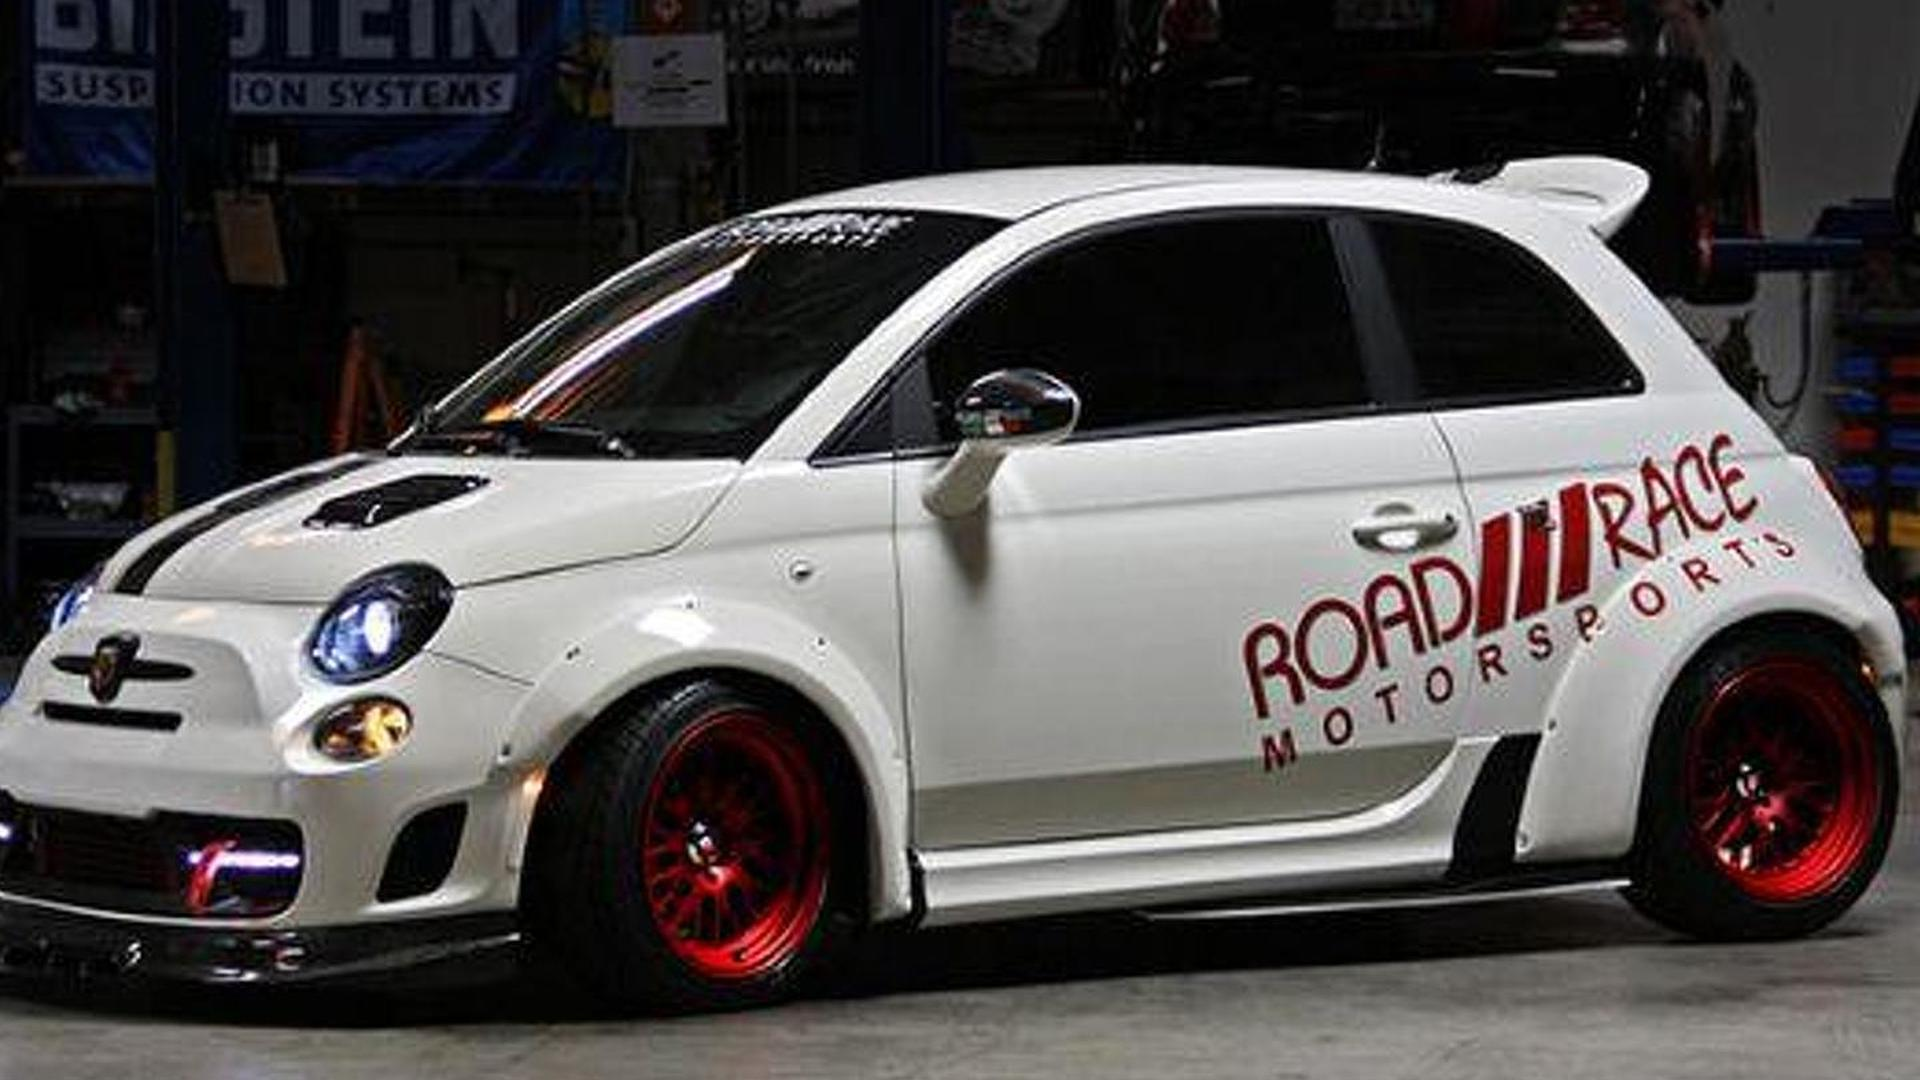 250 bhp Fiat 500 by Road Race Motorsports is a true pocket rocket